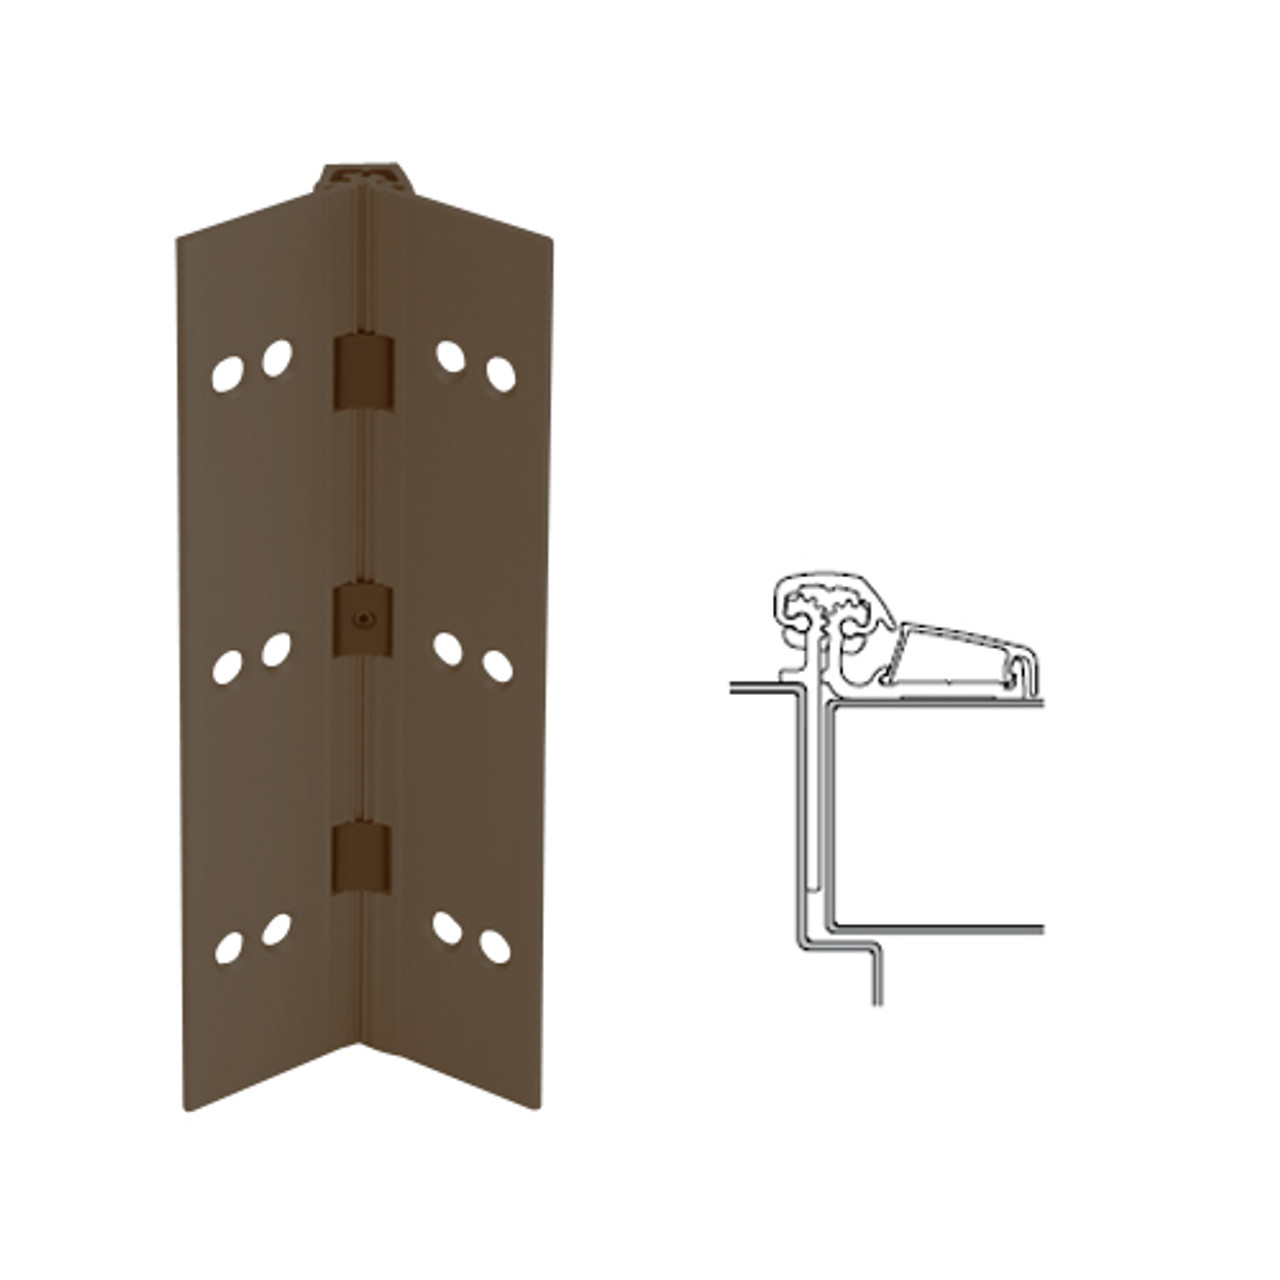 053XY-313AN-95-SECHM IVES Adjustable Half Surface Continuous Geared Hinges with Security Screws - Hex Pin Drive in Dark Bronze Anodized